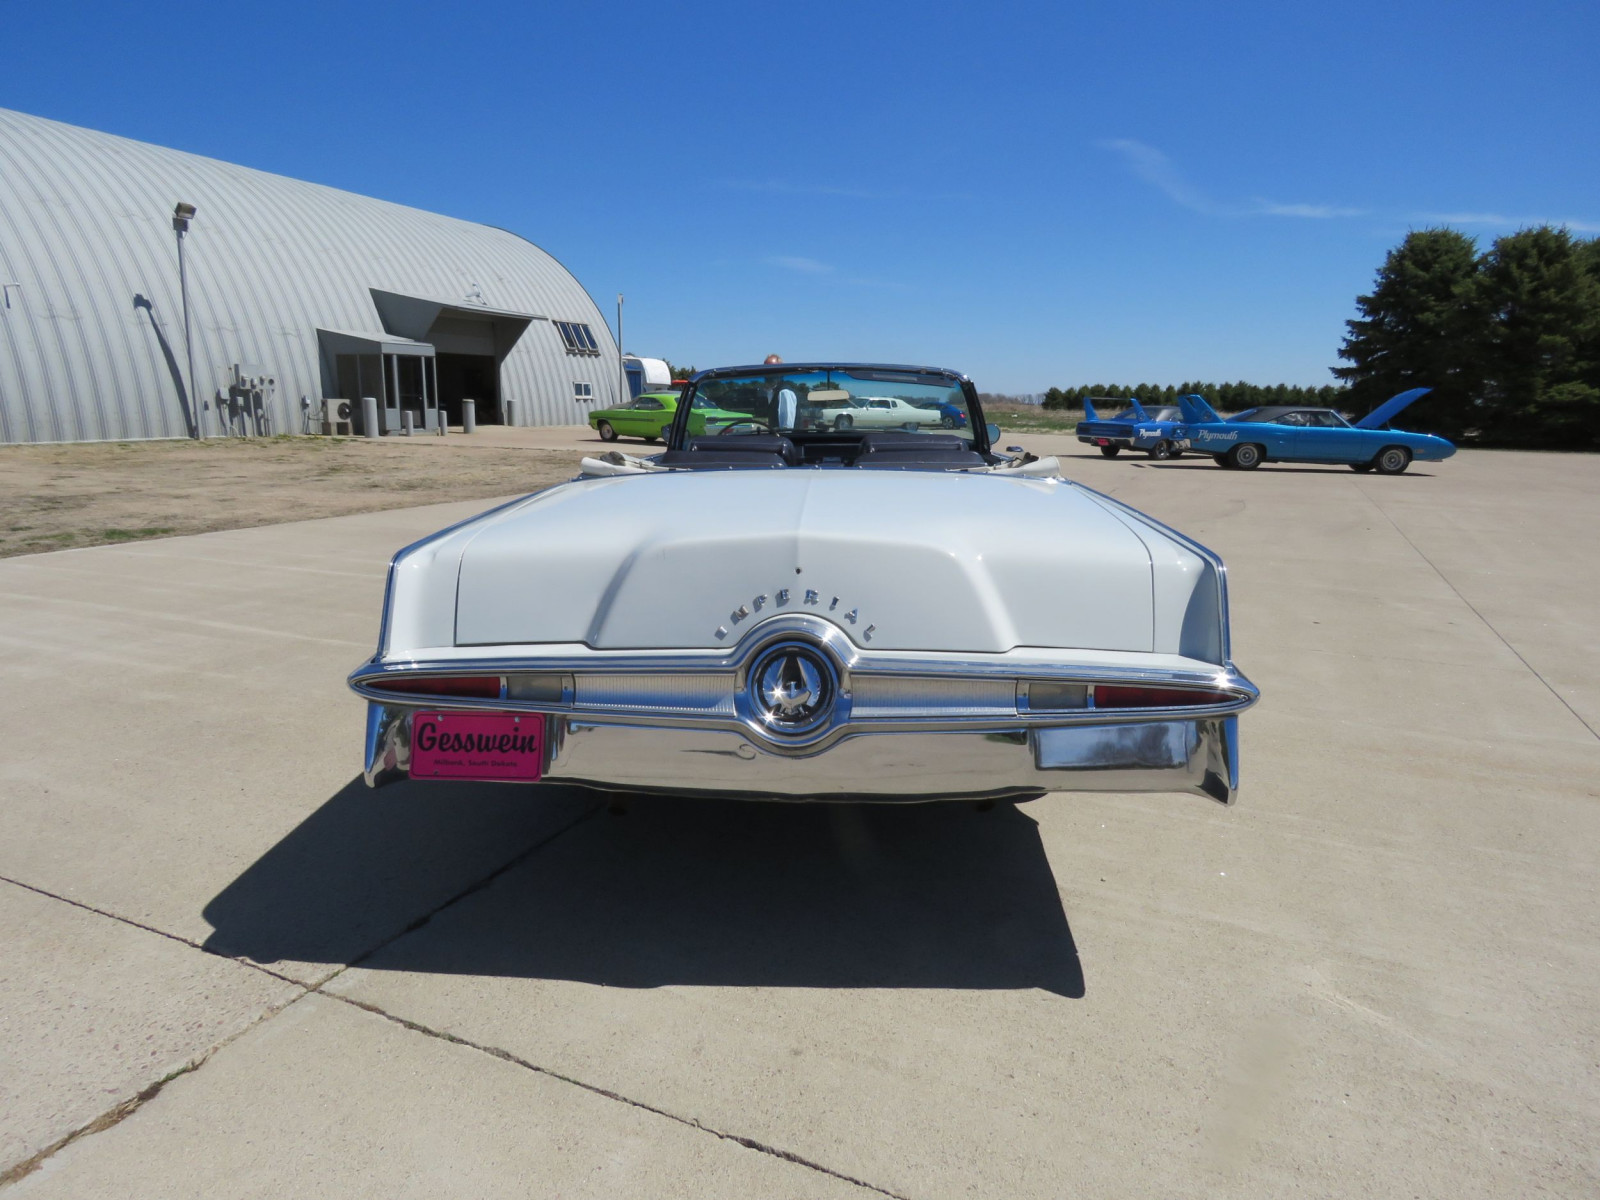 1965 Chrysler Imperial Crown Convertible - Image 6